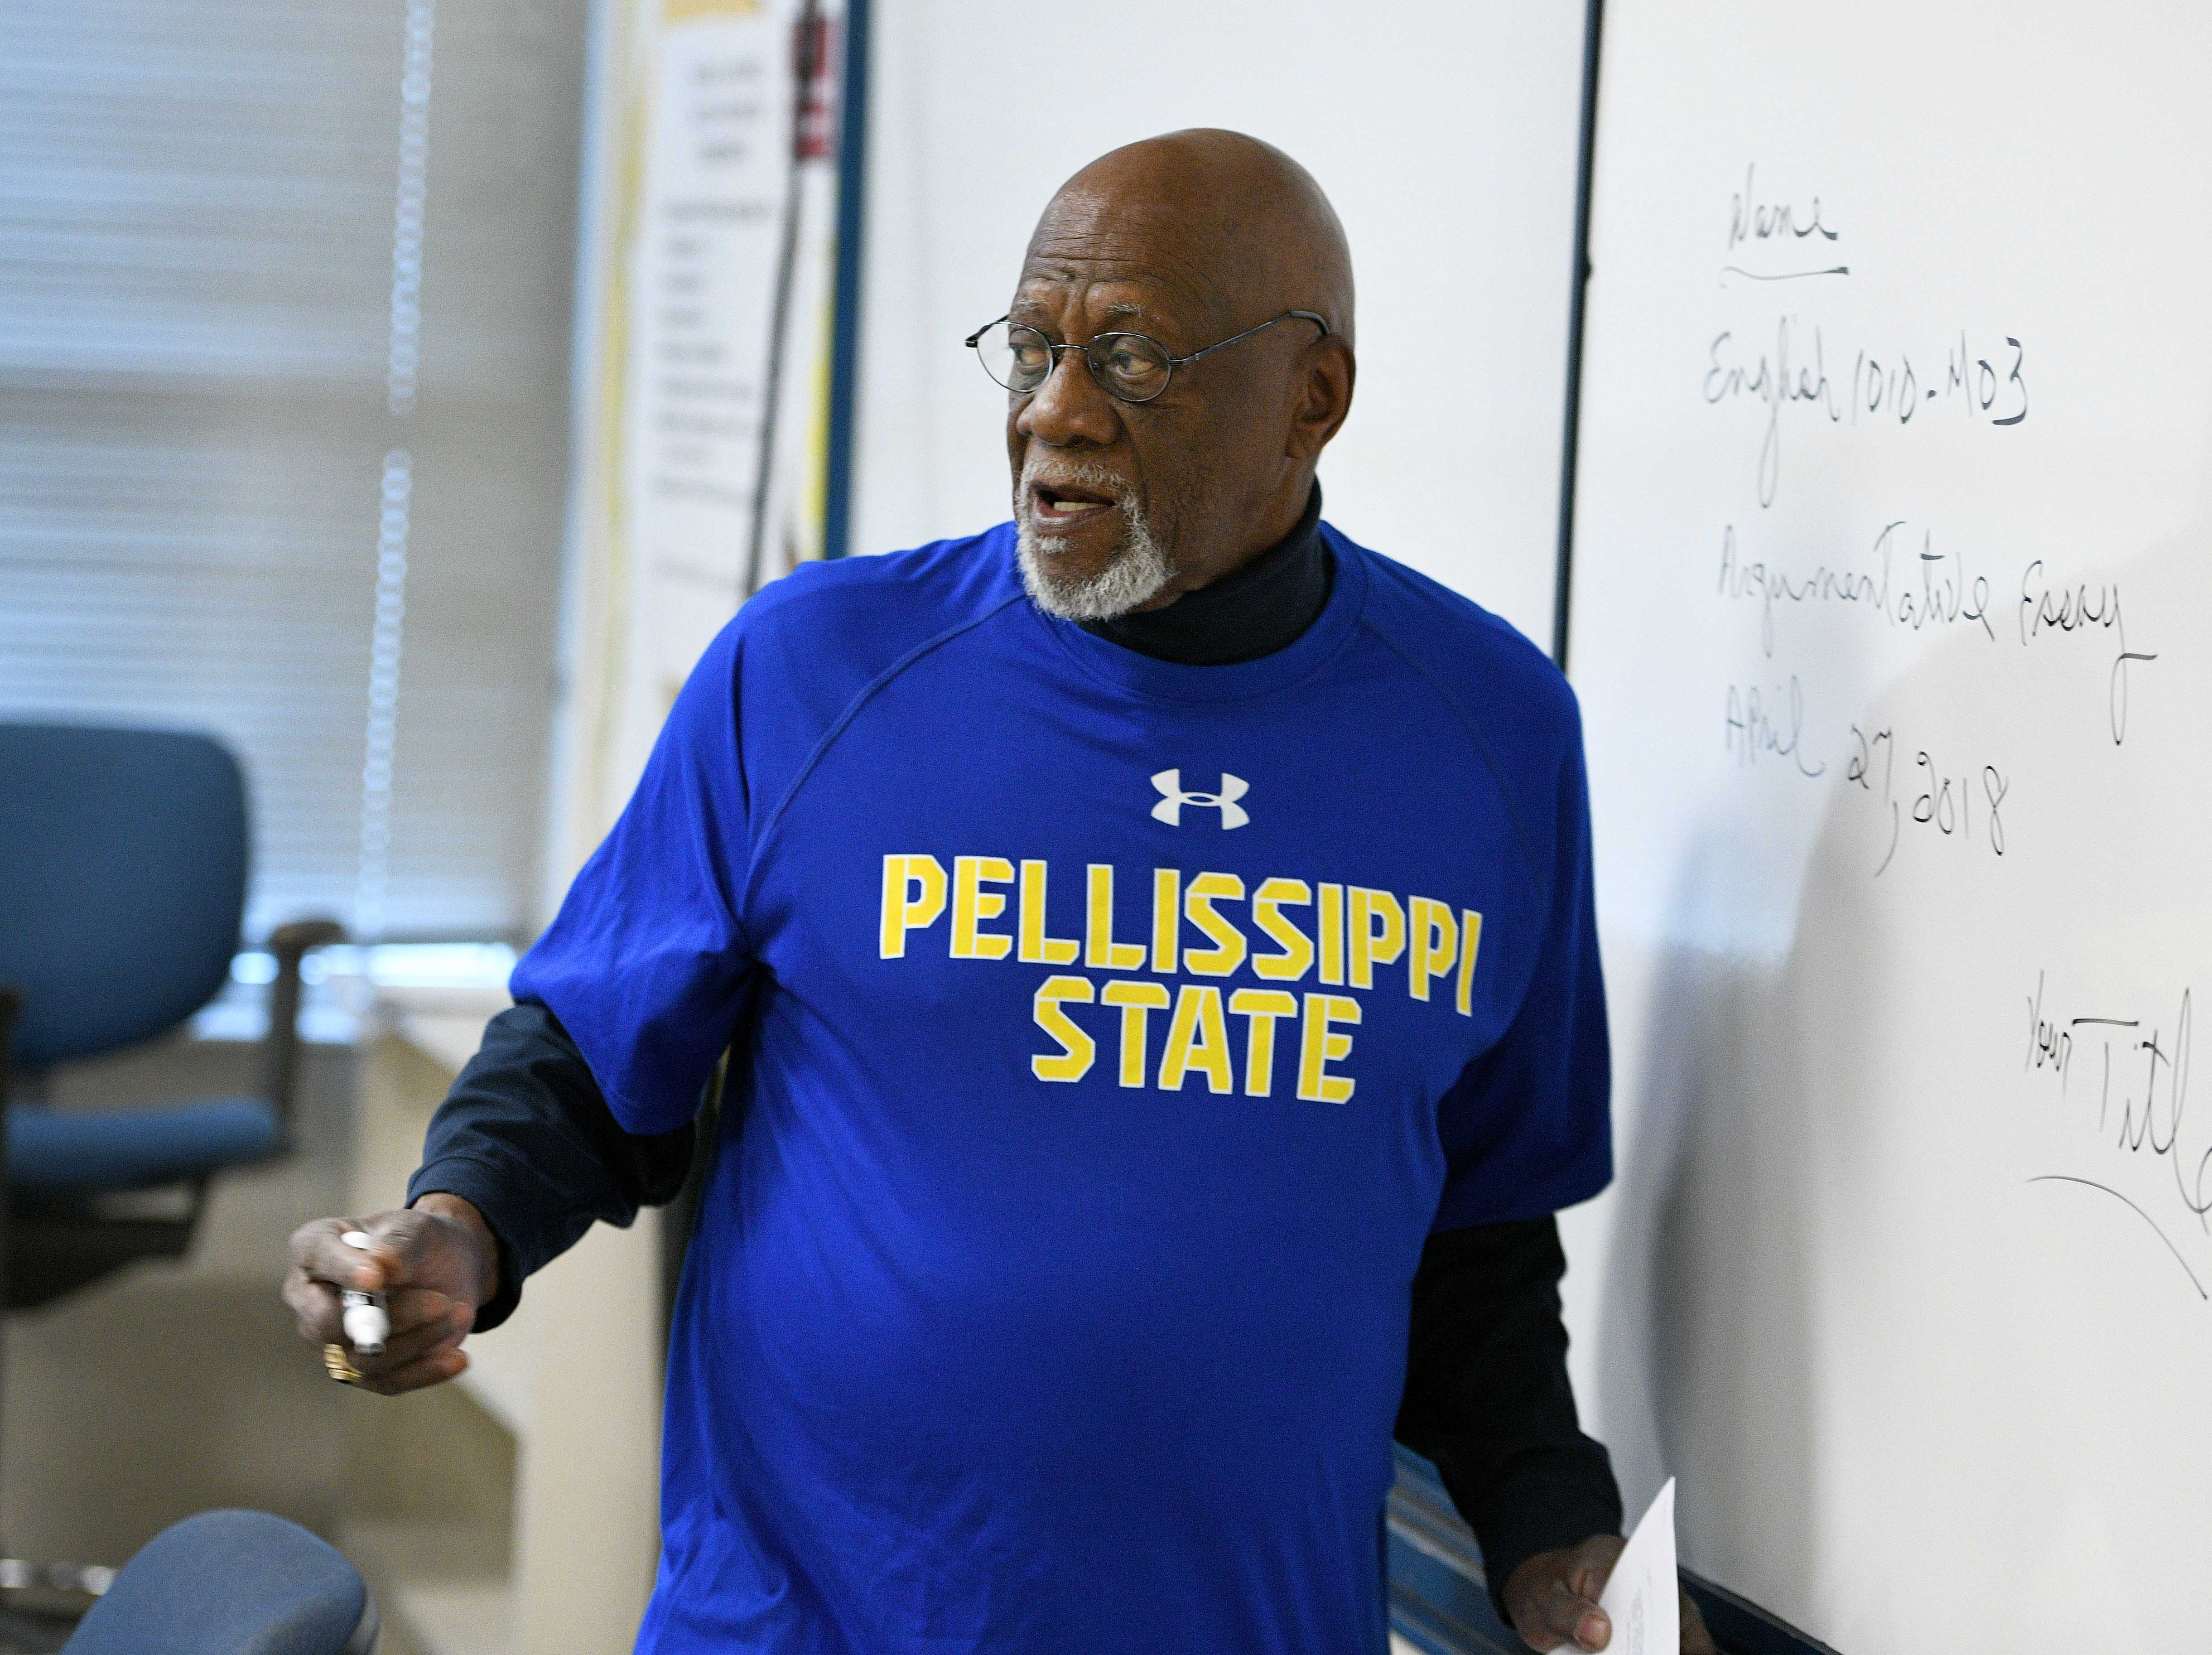 Professor Robert Boyd teaching one of his last classes  Wednesday, April 25, 2018 before retiring from Pellissippi State Community College.